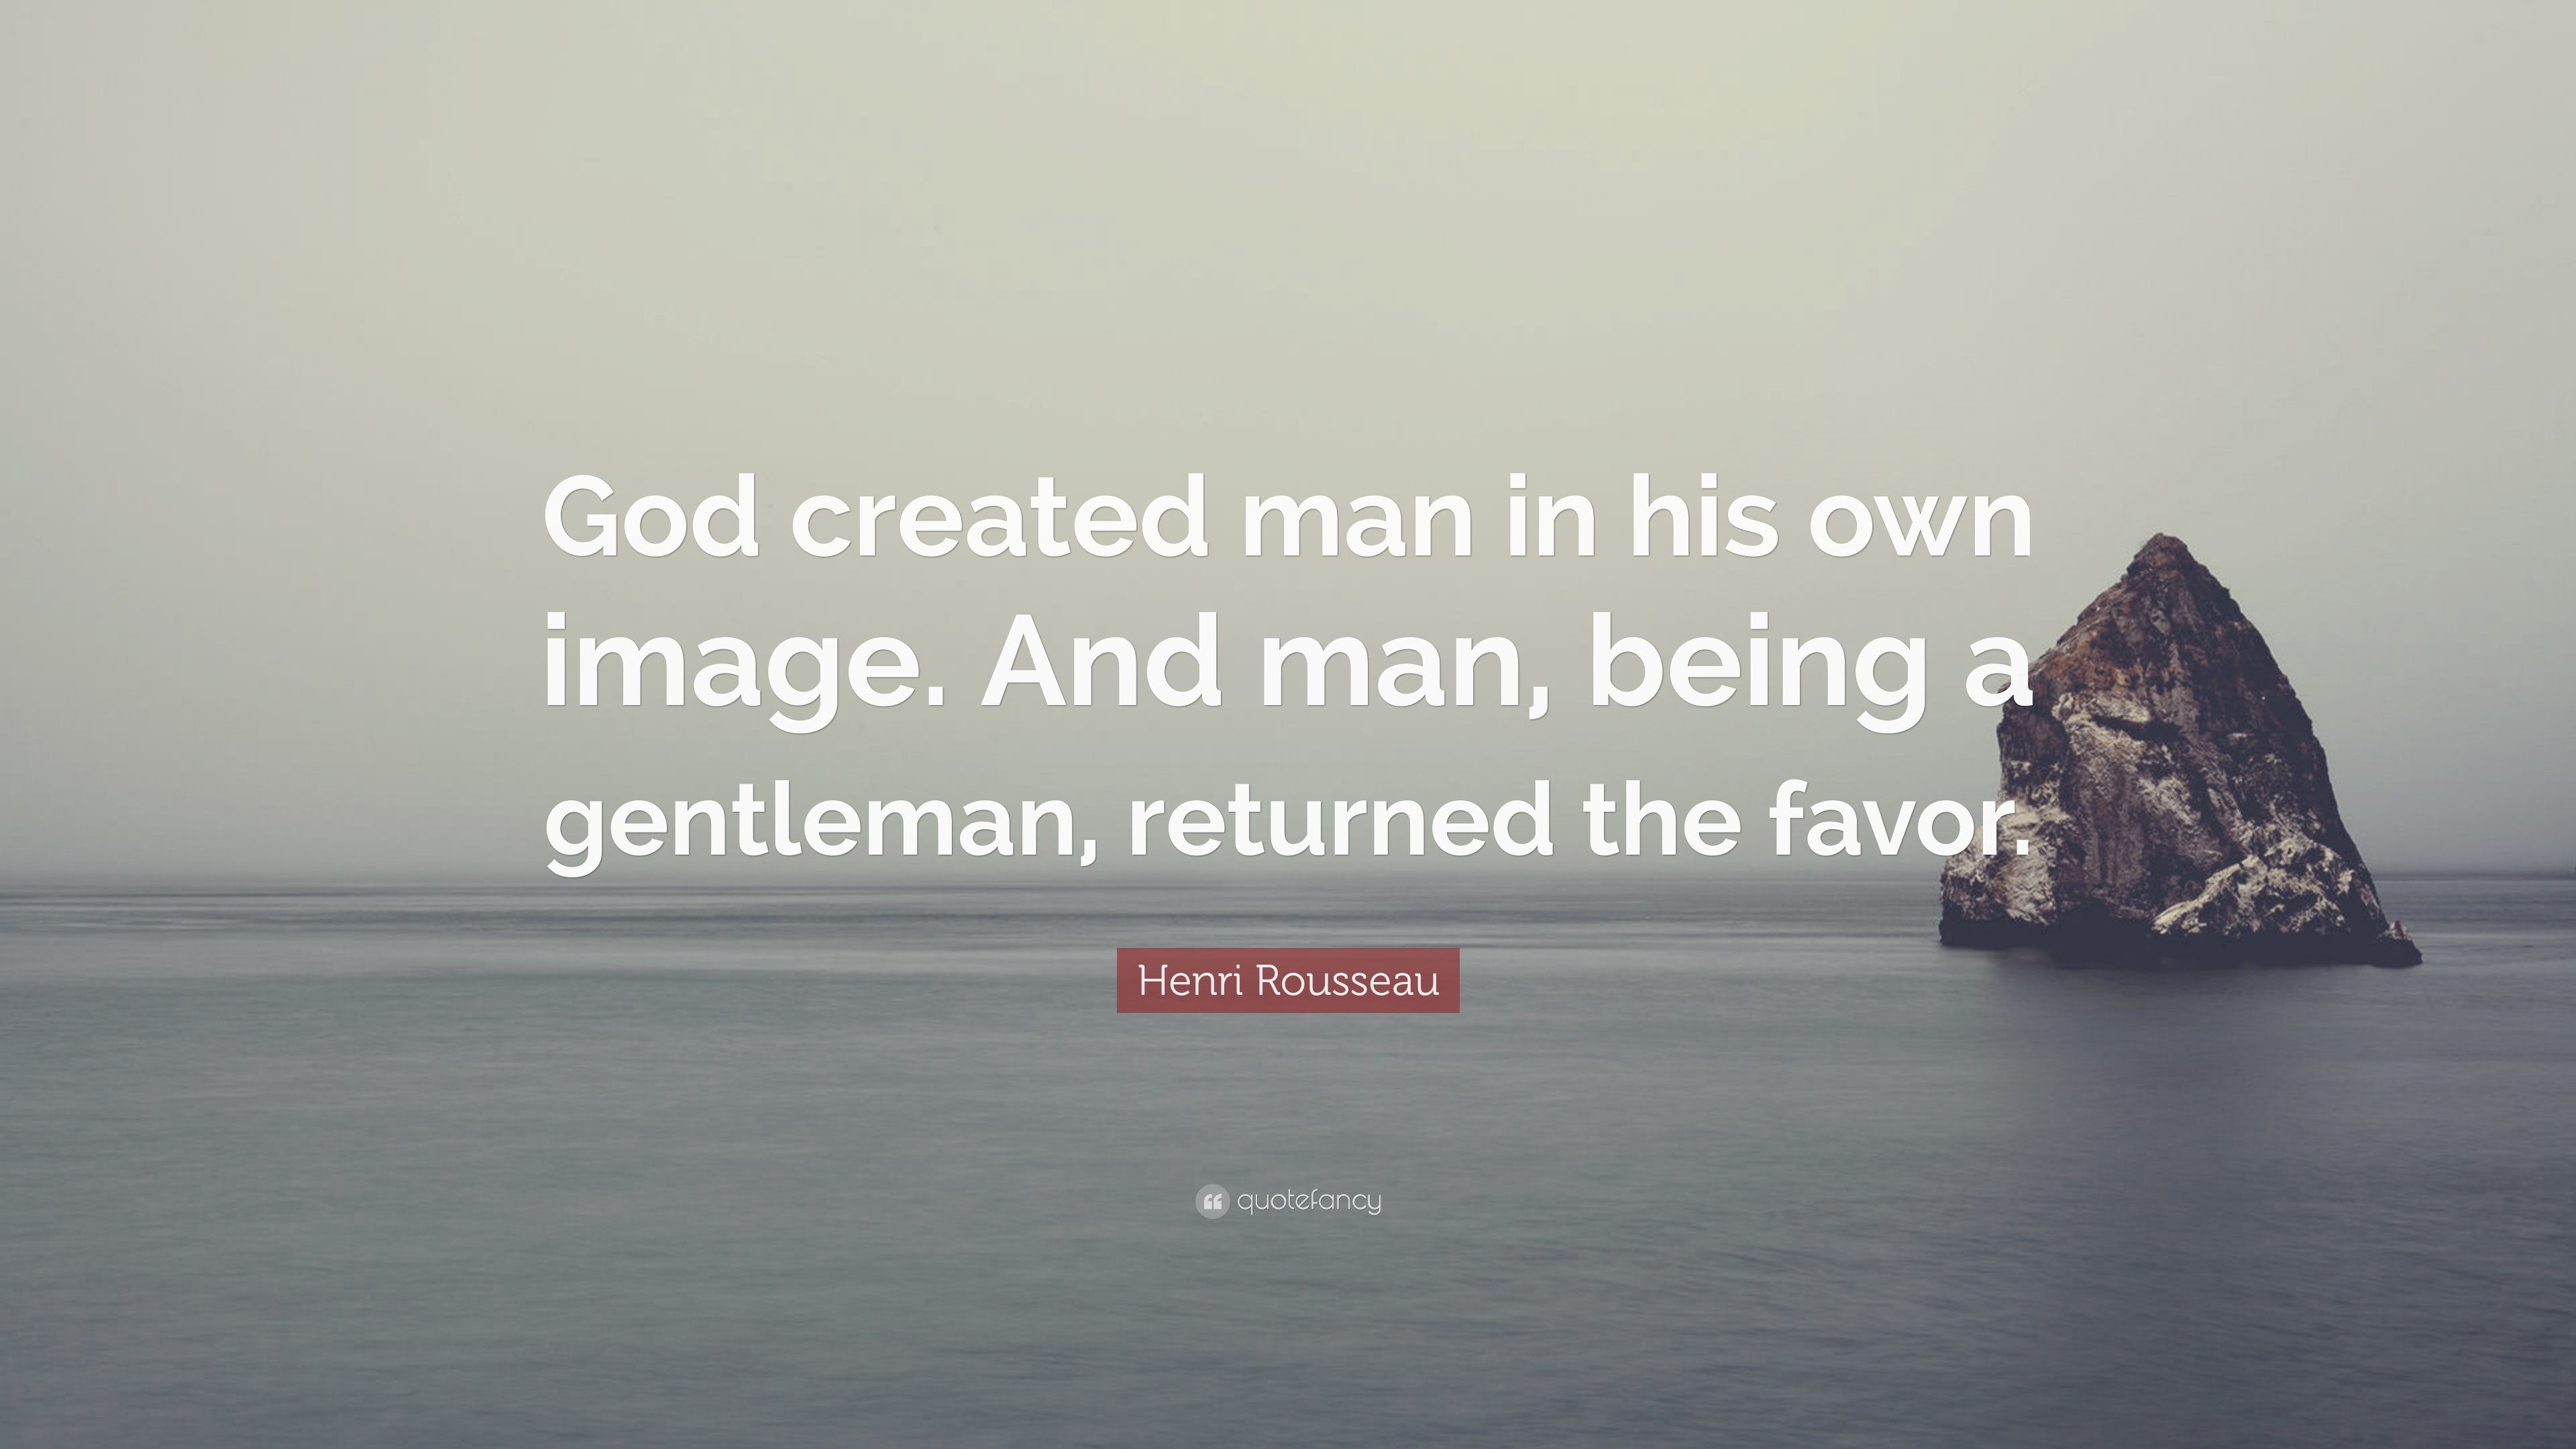 God created man from